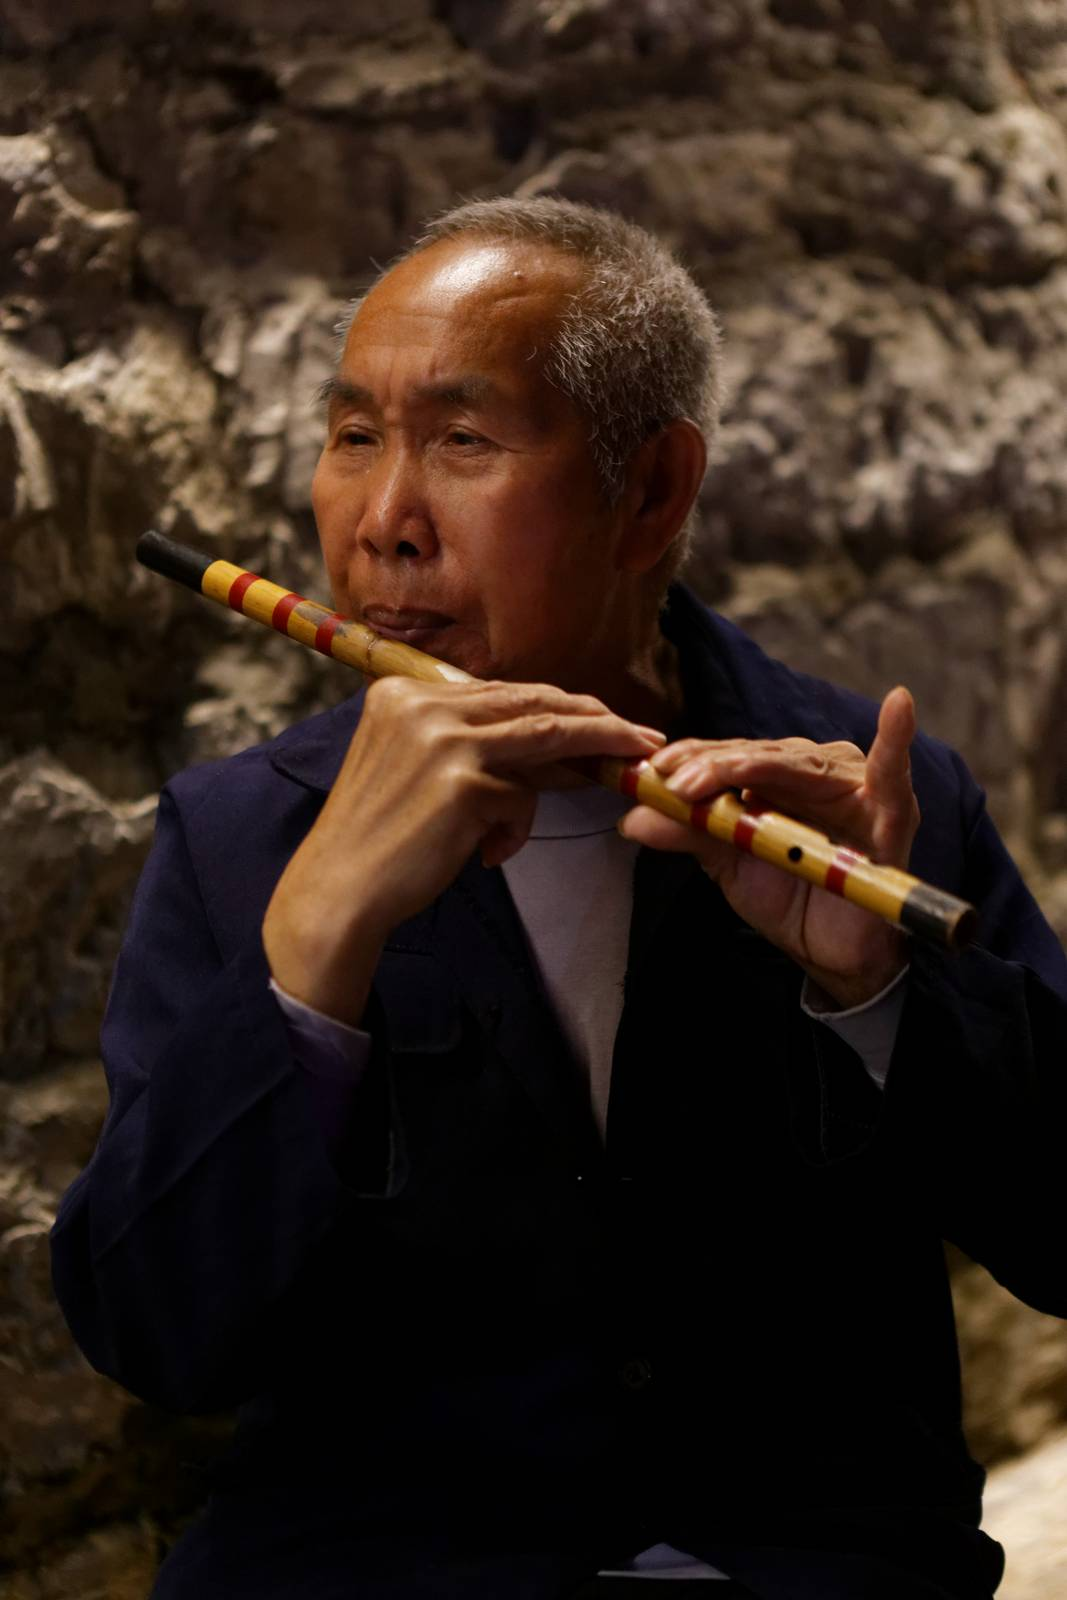 China portraits, the flute player